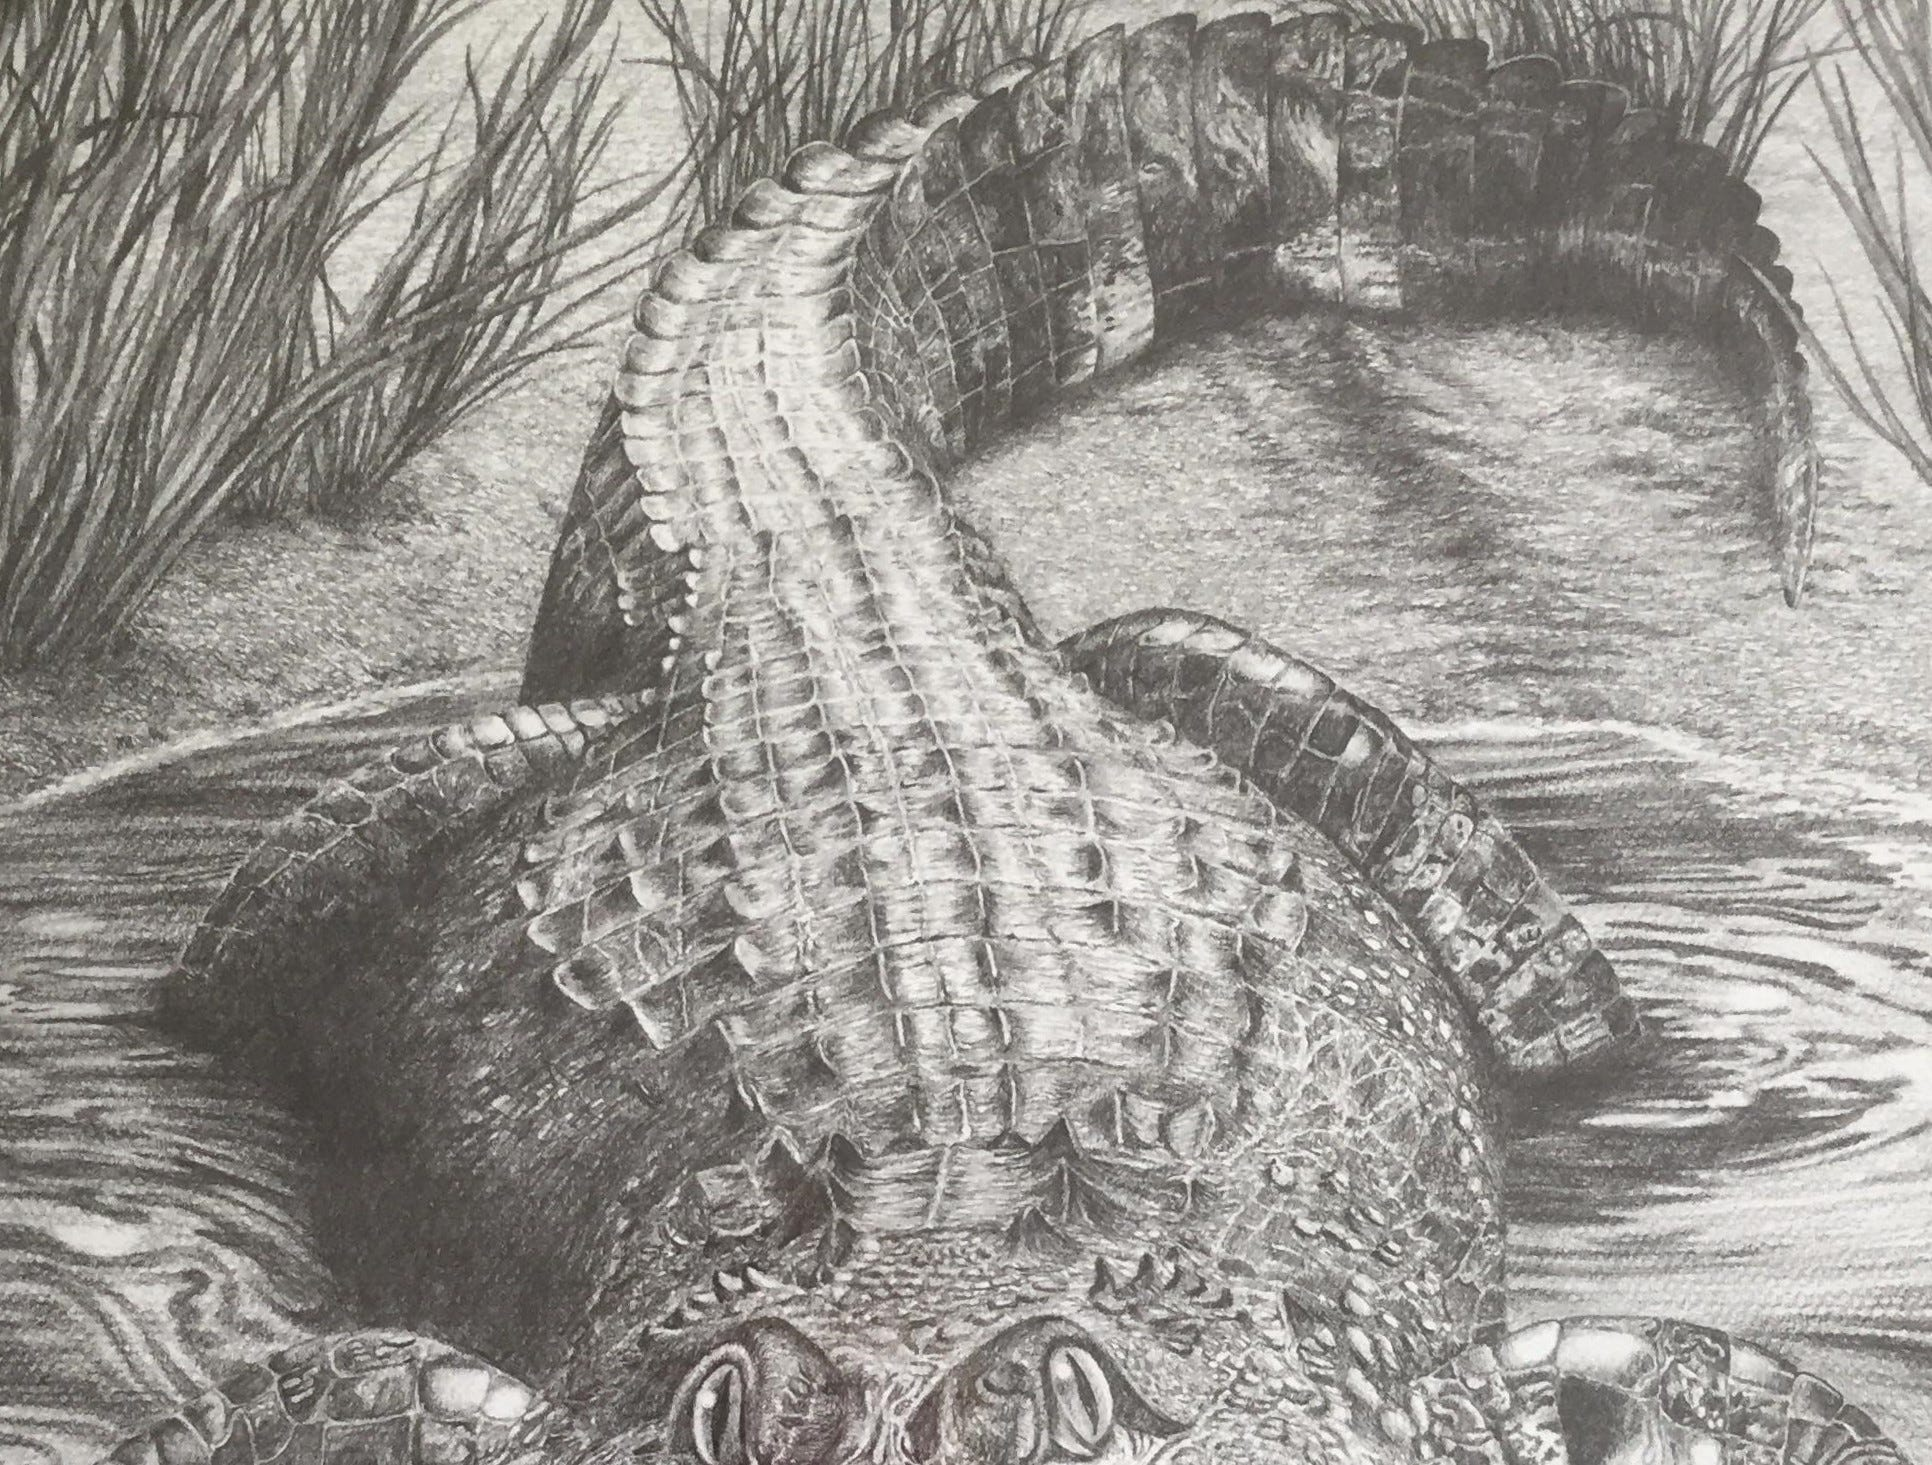 This alligator hangs in former Community Press employee Jan Chesney's Florida home.